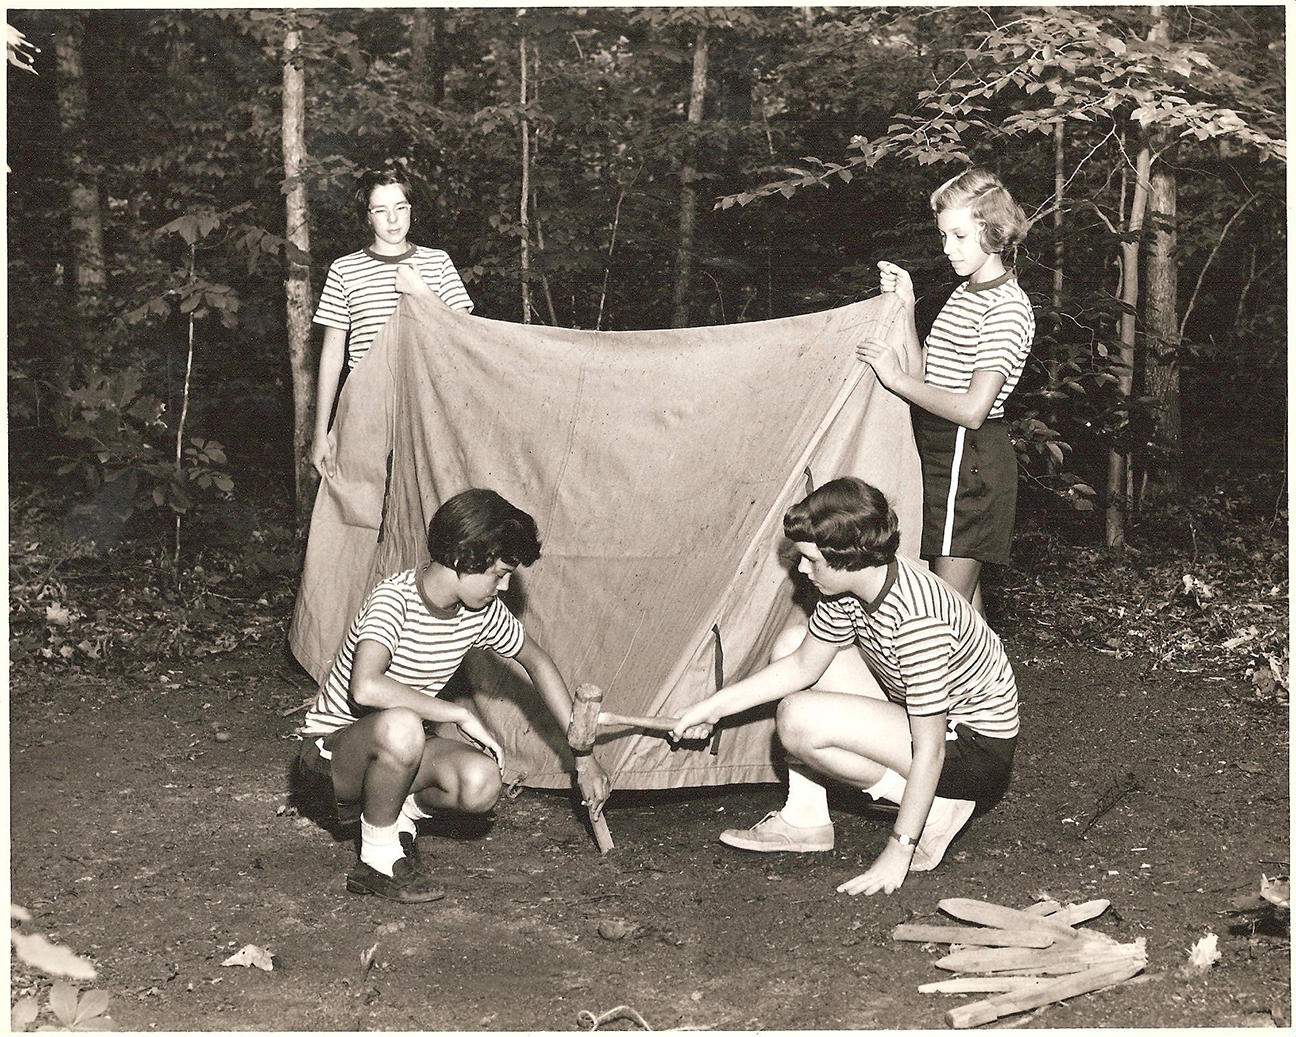 three girls set up a tent in the woods